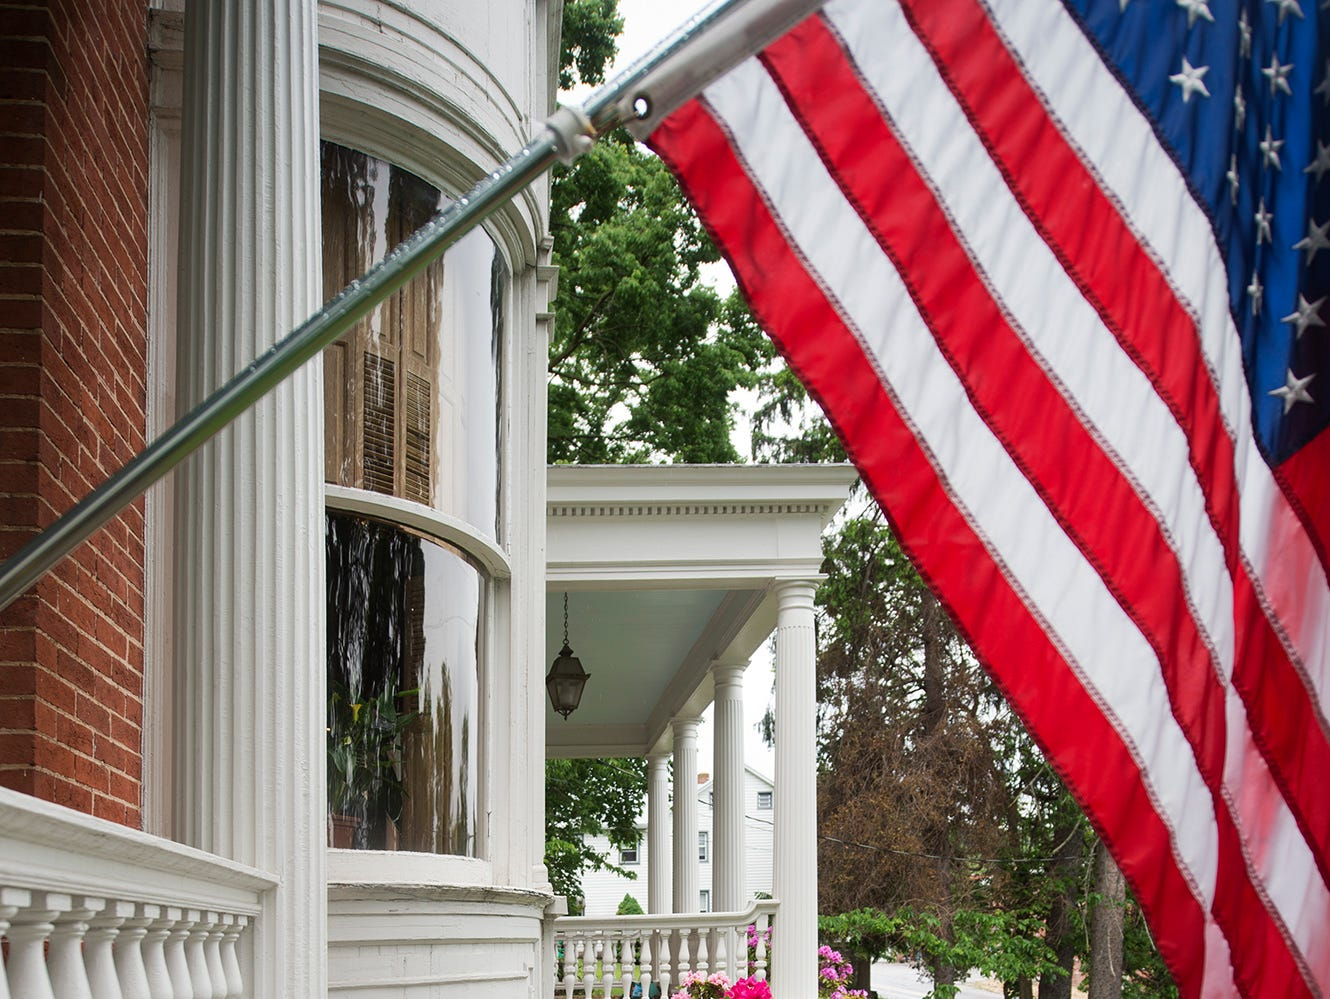 A flag waves in the spring breeze on the front porch of the Emig Mansion Bed & Breakfast on Sunday May 17, 2015.